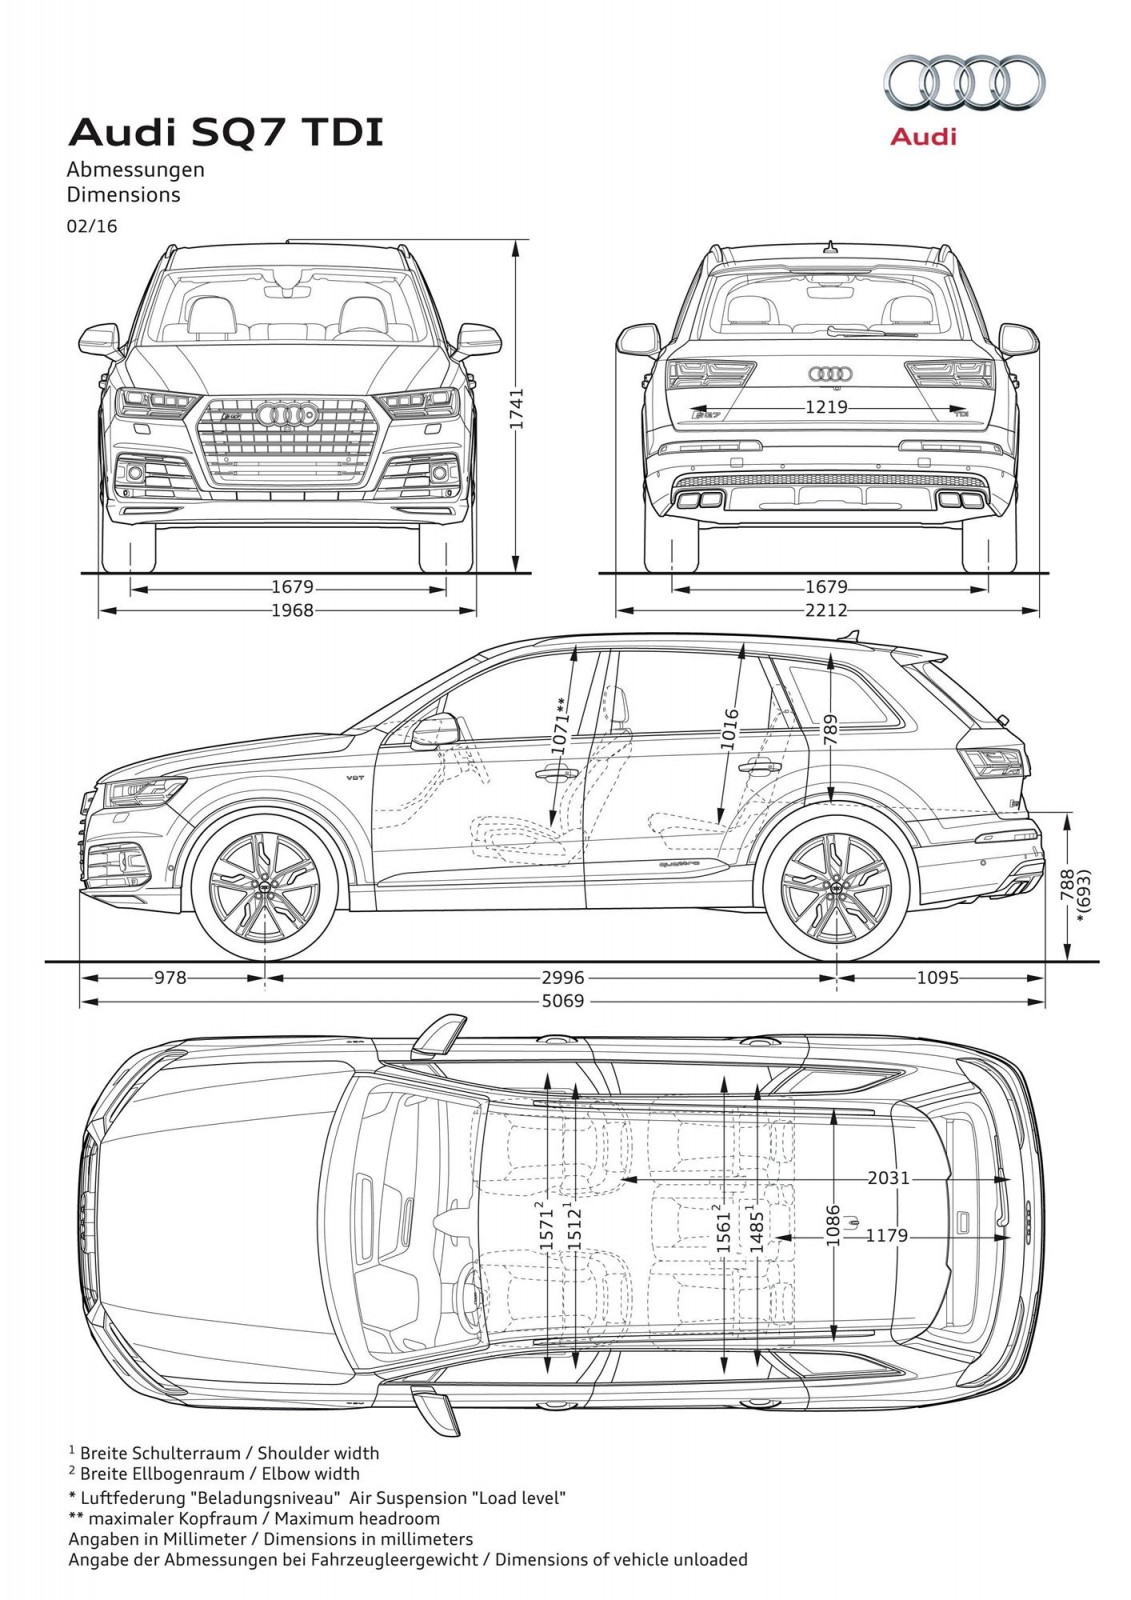 Audi Q5 moreover Audi A6abmessungen 2 as well Serpentine Belt Diagram 2005 2003 Lincoln Ls V8 39 Liter Engine 05424 furthermore Rs6 Avant as well Blu sheet. on audi q5 model